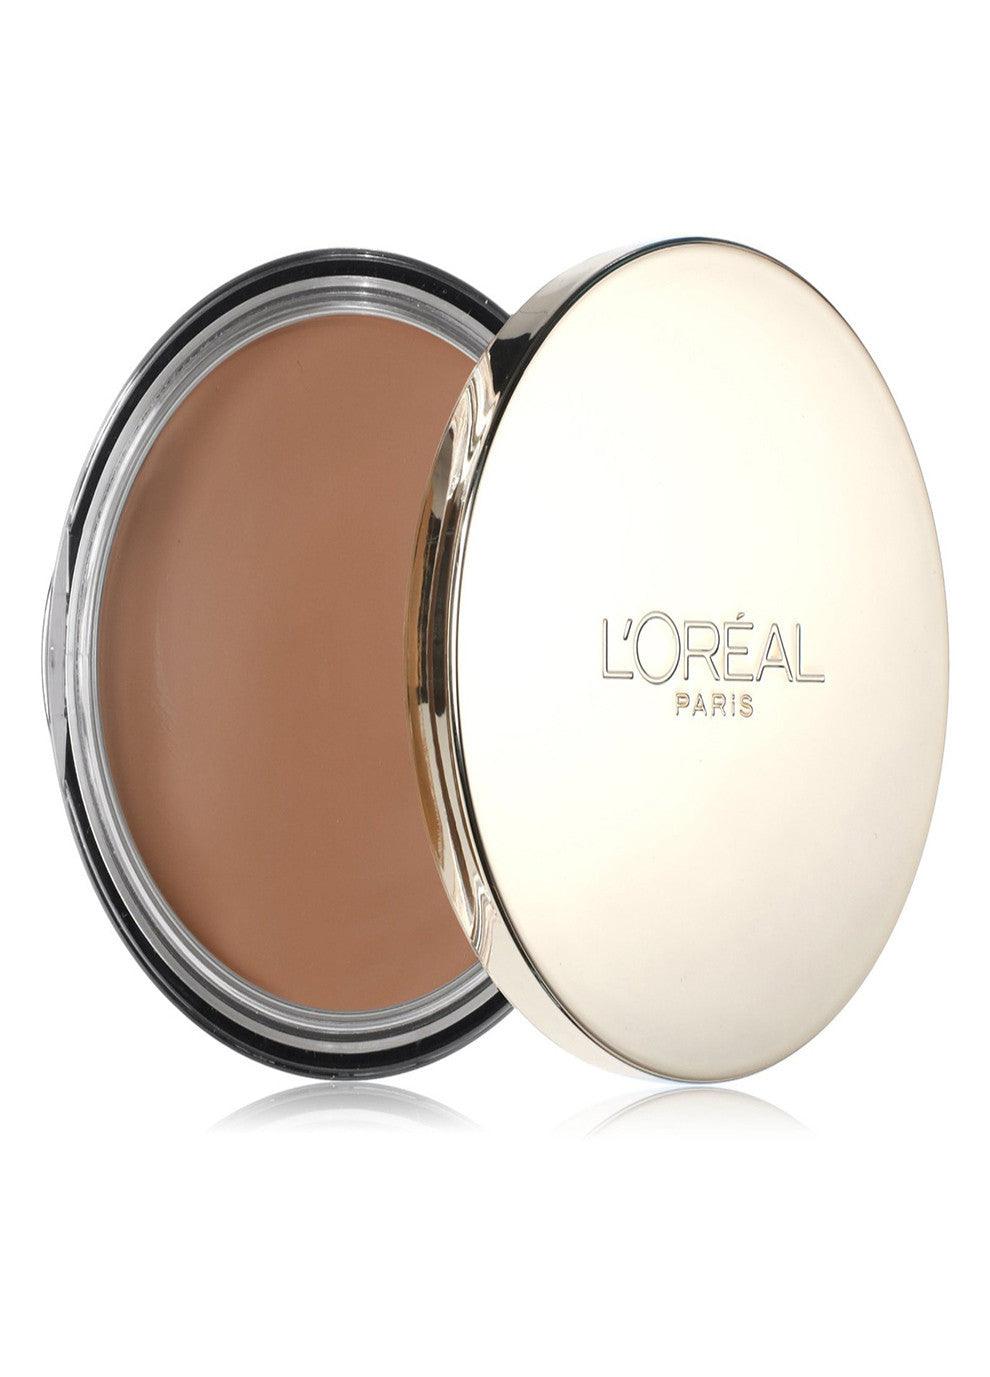 L'Oreal Visible Lift Repair Absolute Rapid Age Reversing SPF 16 Makeup #141 Classic Tan